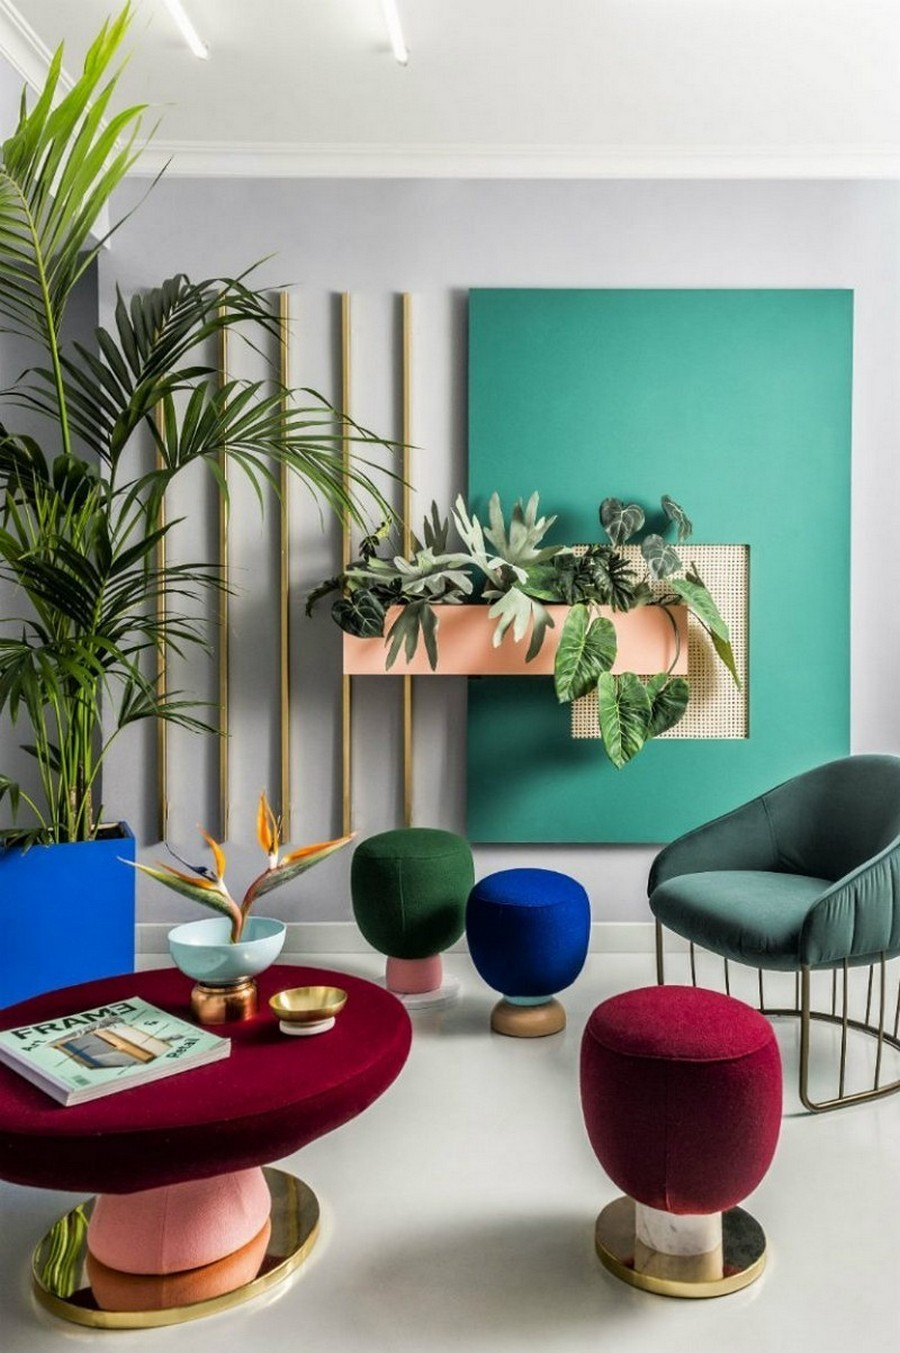 5 Interior Design Trends For 2020 To Help You Create Your Home Decor interior design trends 5 Interior Design Trends For 2020 To Help You Create Your Home Decor 5 Interior Design Trends For 2020 To Help You Create Your Home Decor 5